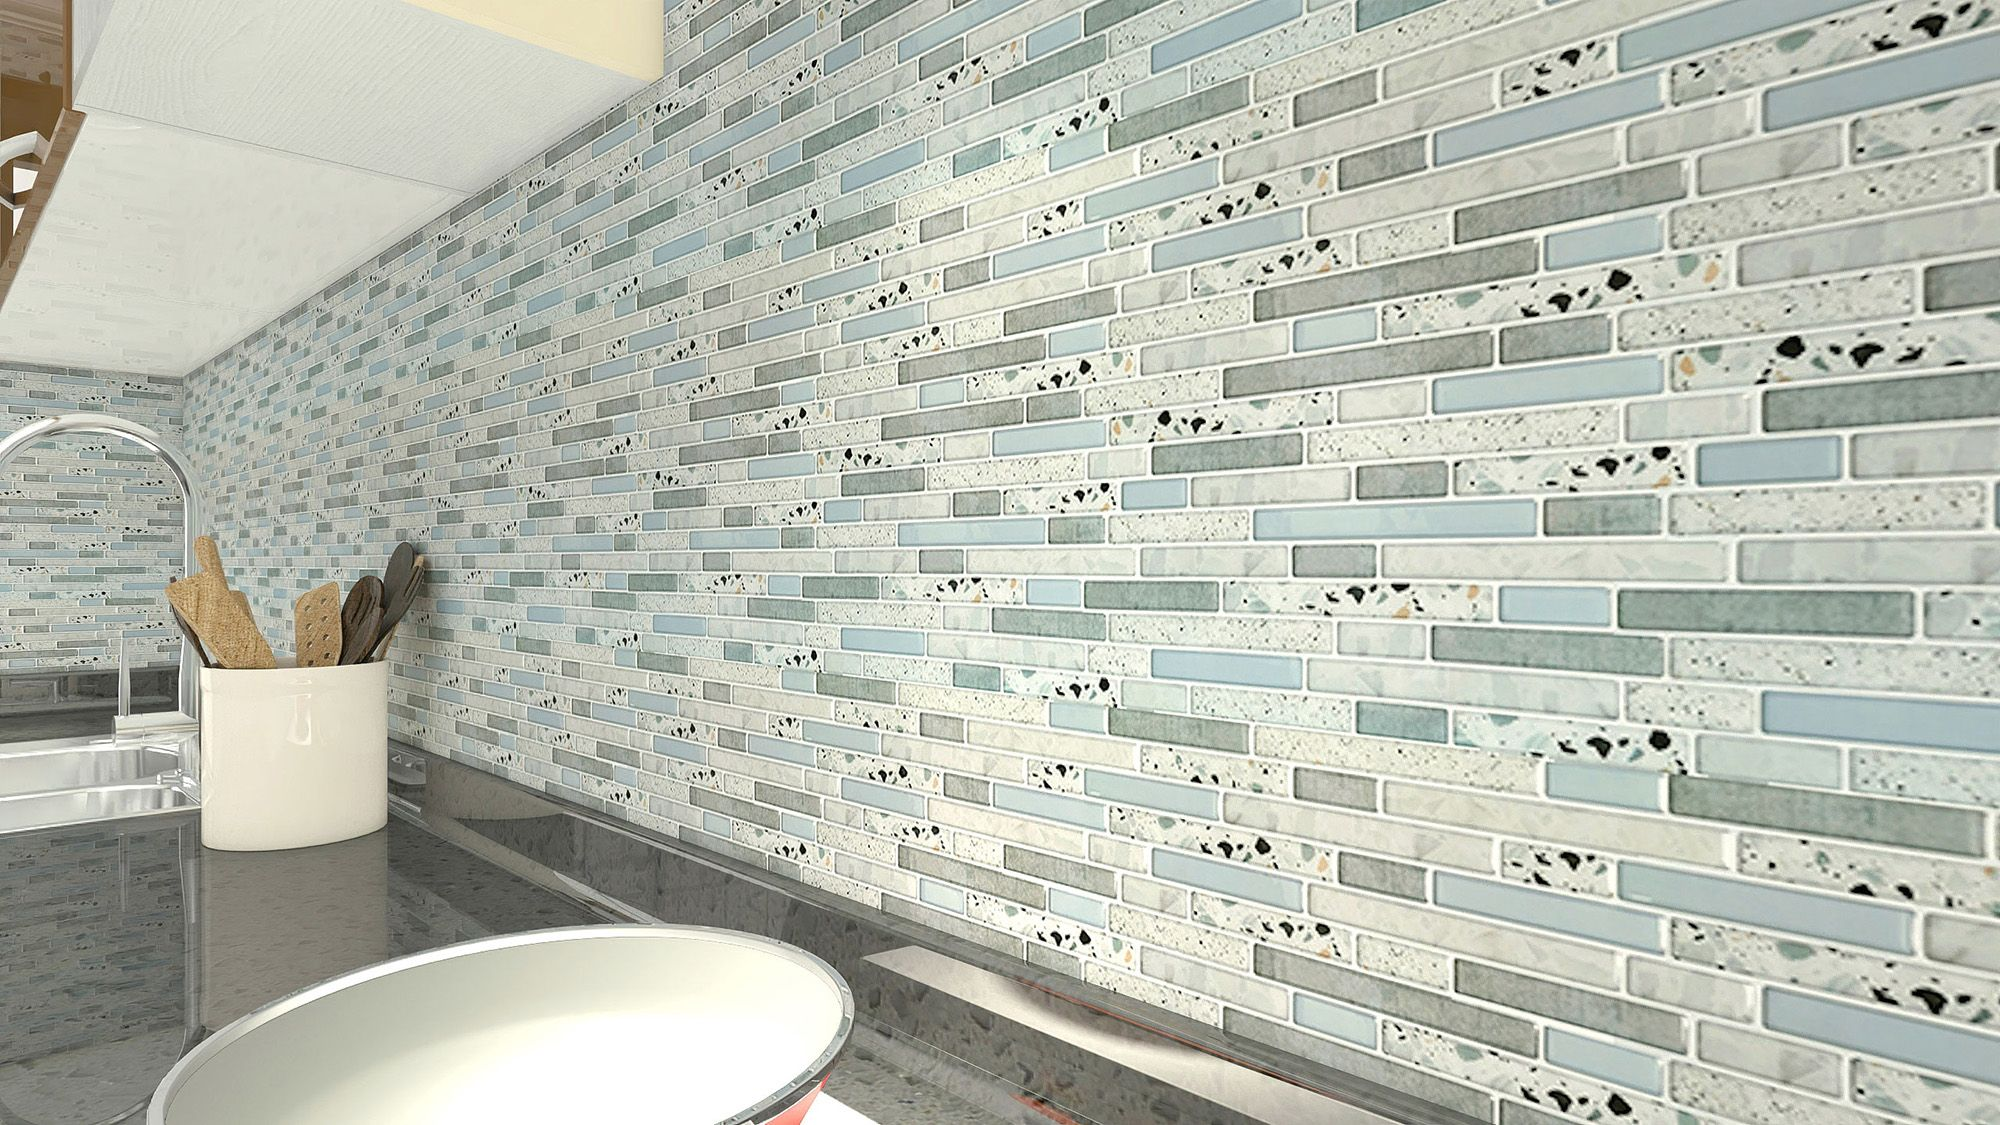 A17085 10 Piece Peel And Stick Backsplash Tile 12 X 12 Stone Tiles In 2020 Peel N Stick Backsplash Tile Backsplash Backsplash